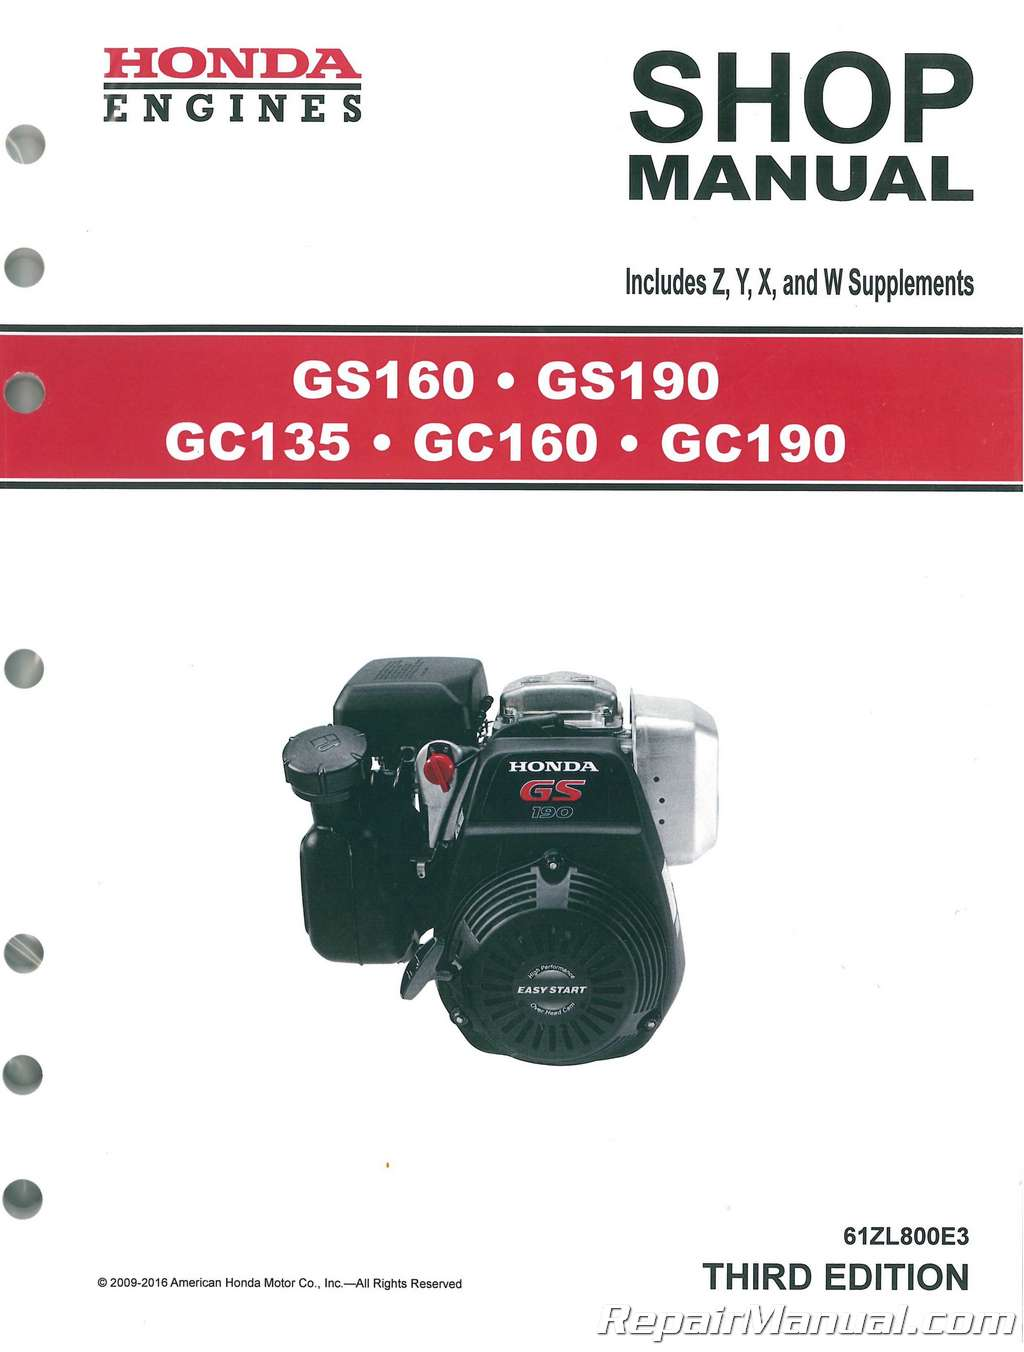 Honda Vin Decoder >> Honda GC135 GC160 GC190 GS160 GS190 Engine Shop Manual